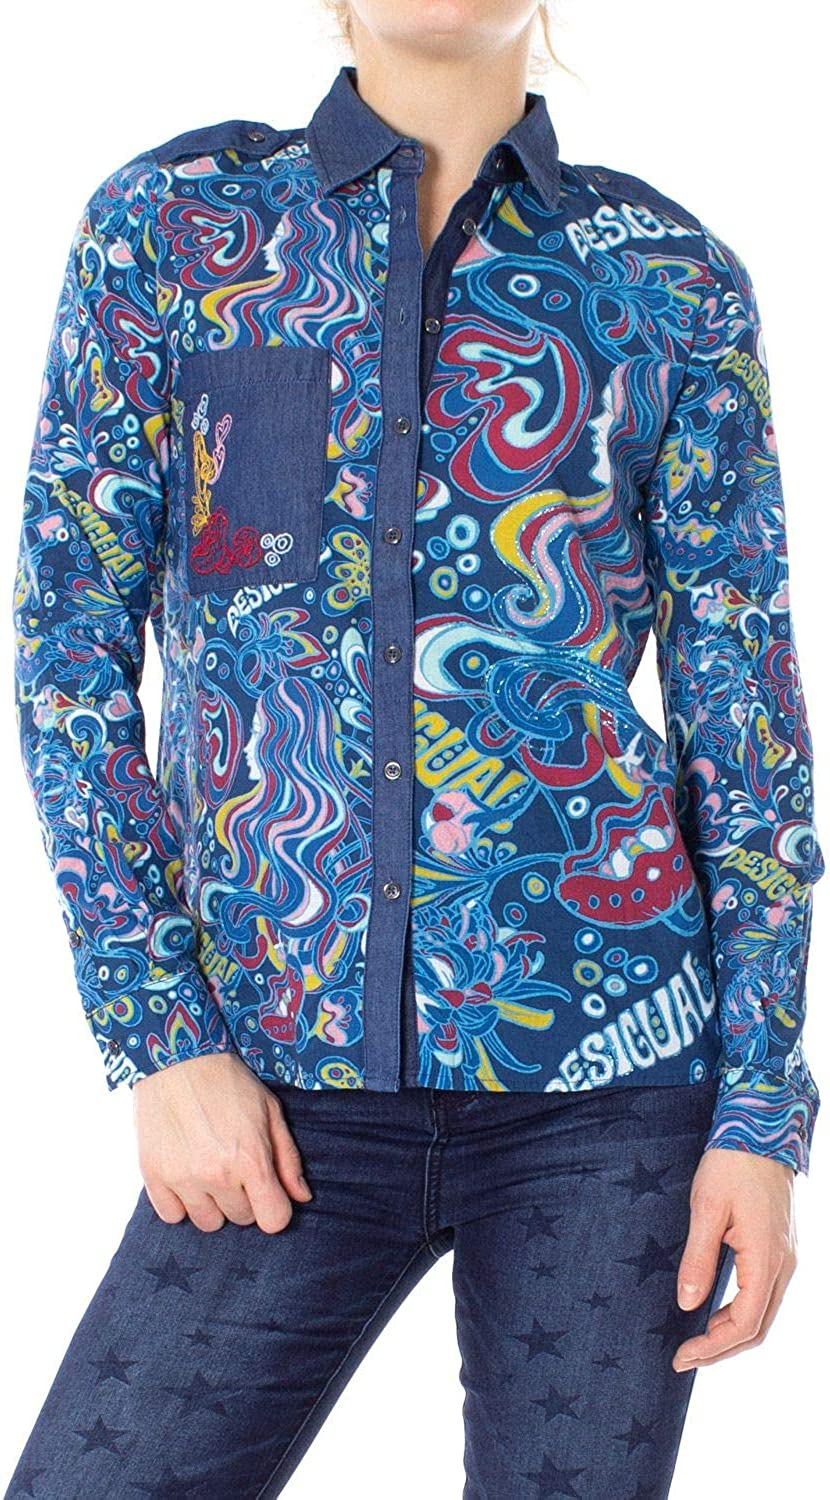 Desigual Women's 19SWCW93blueE bluee Cotton Shirt